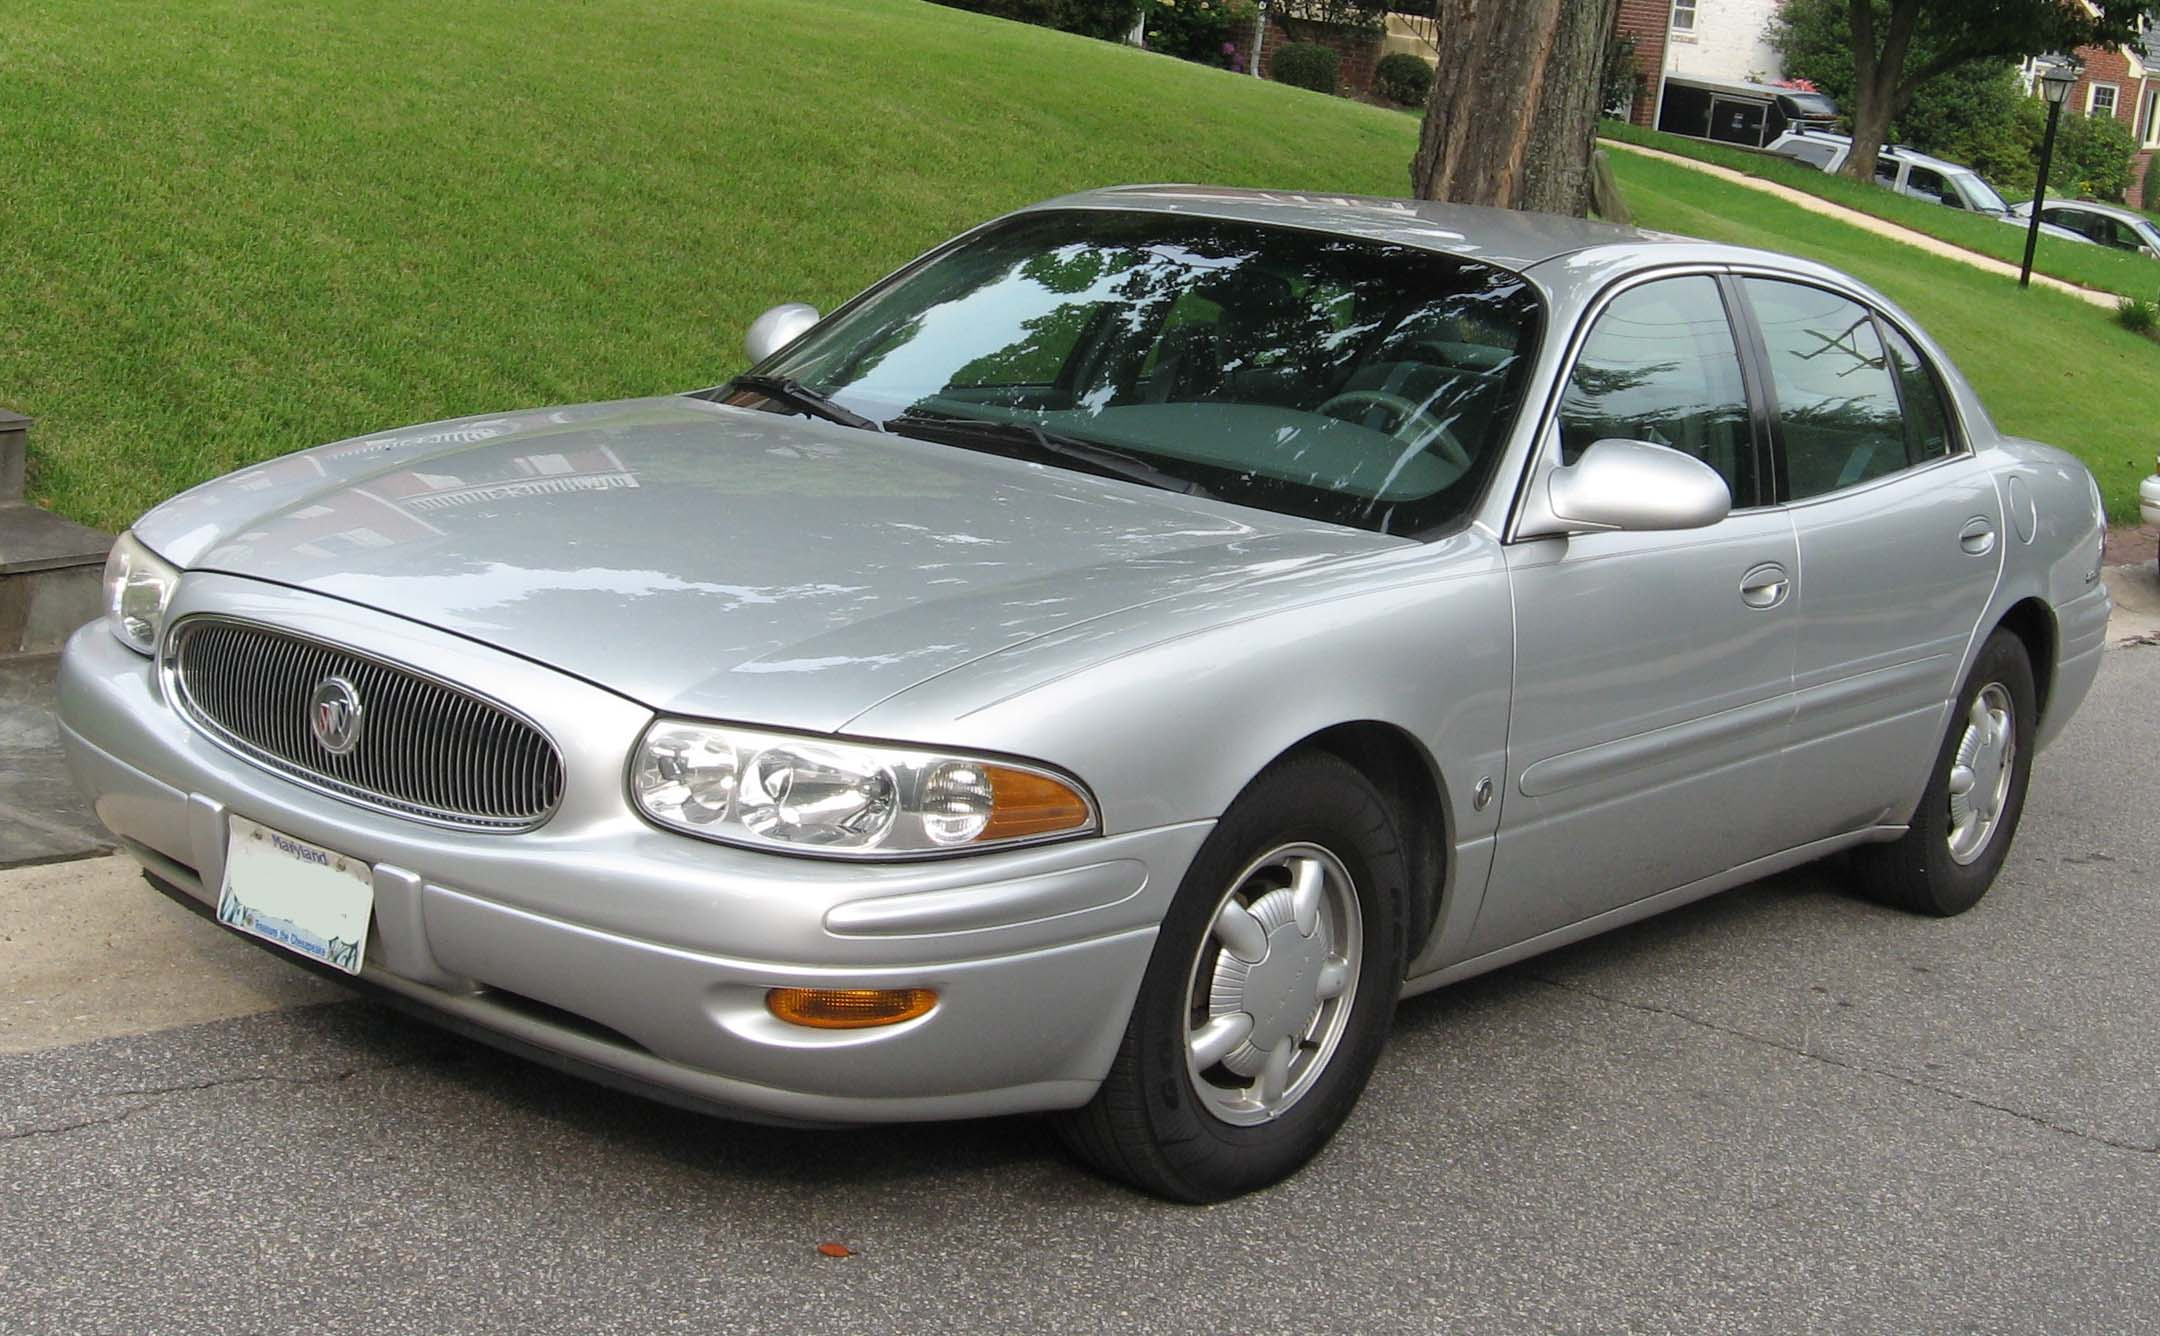 Buick LeSabre - 2160 x 1336, 05 out of 12